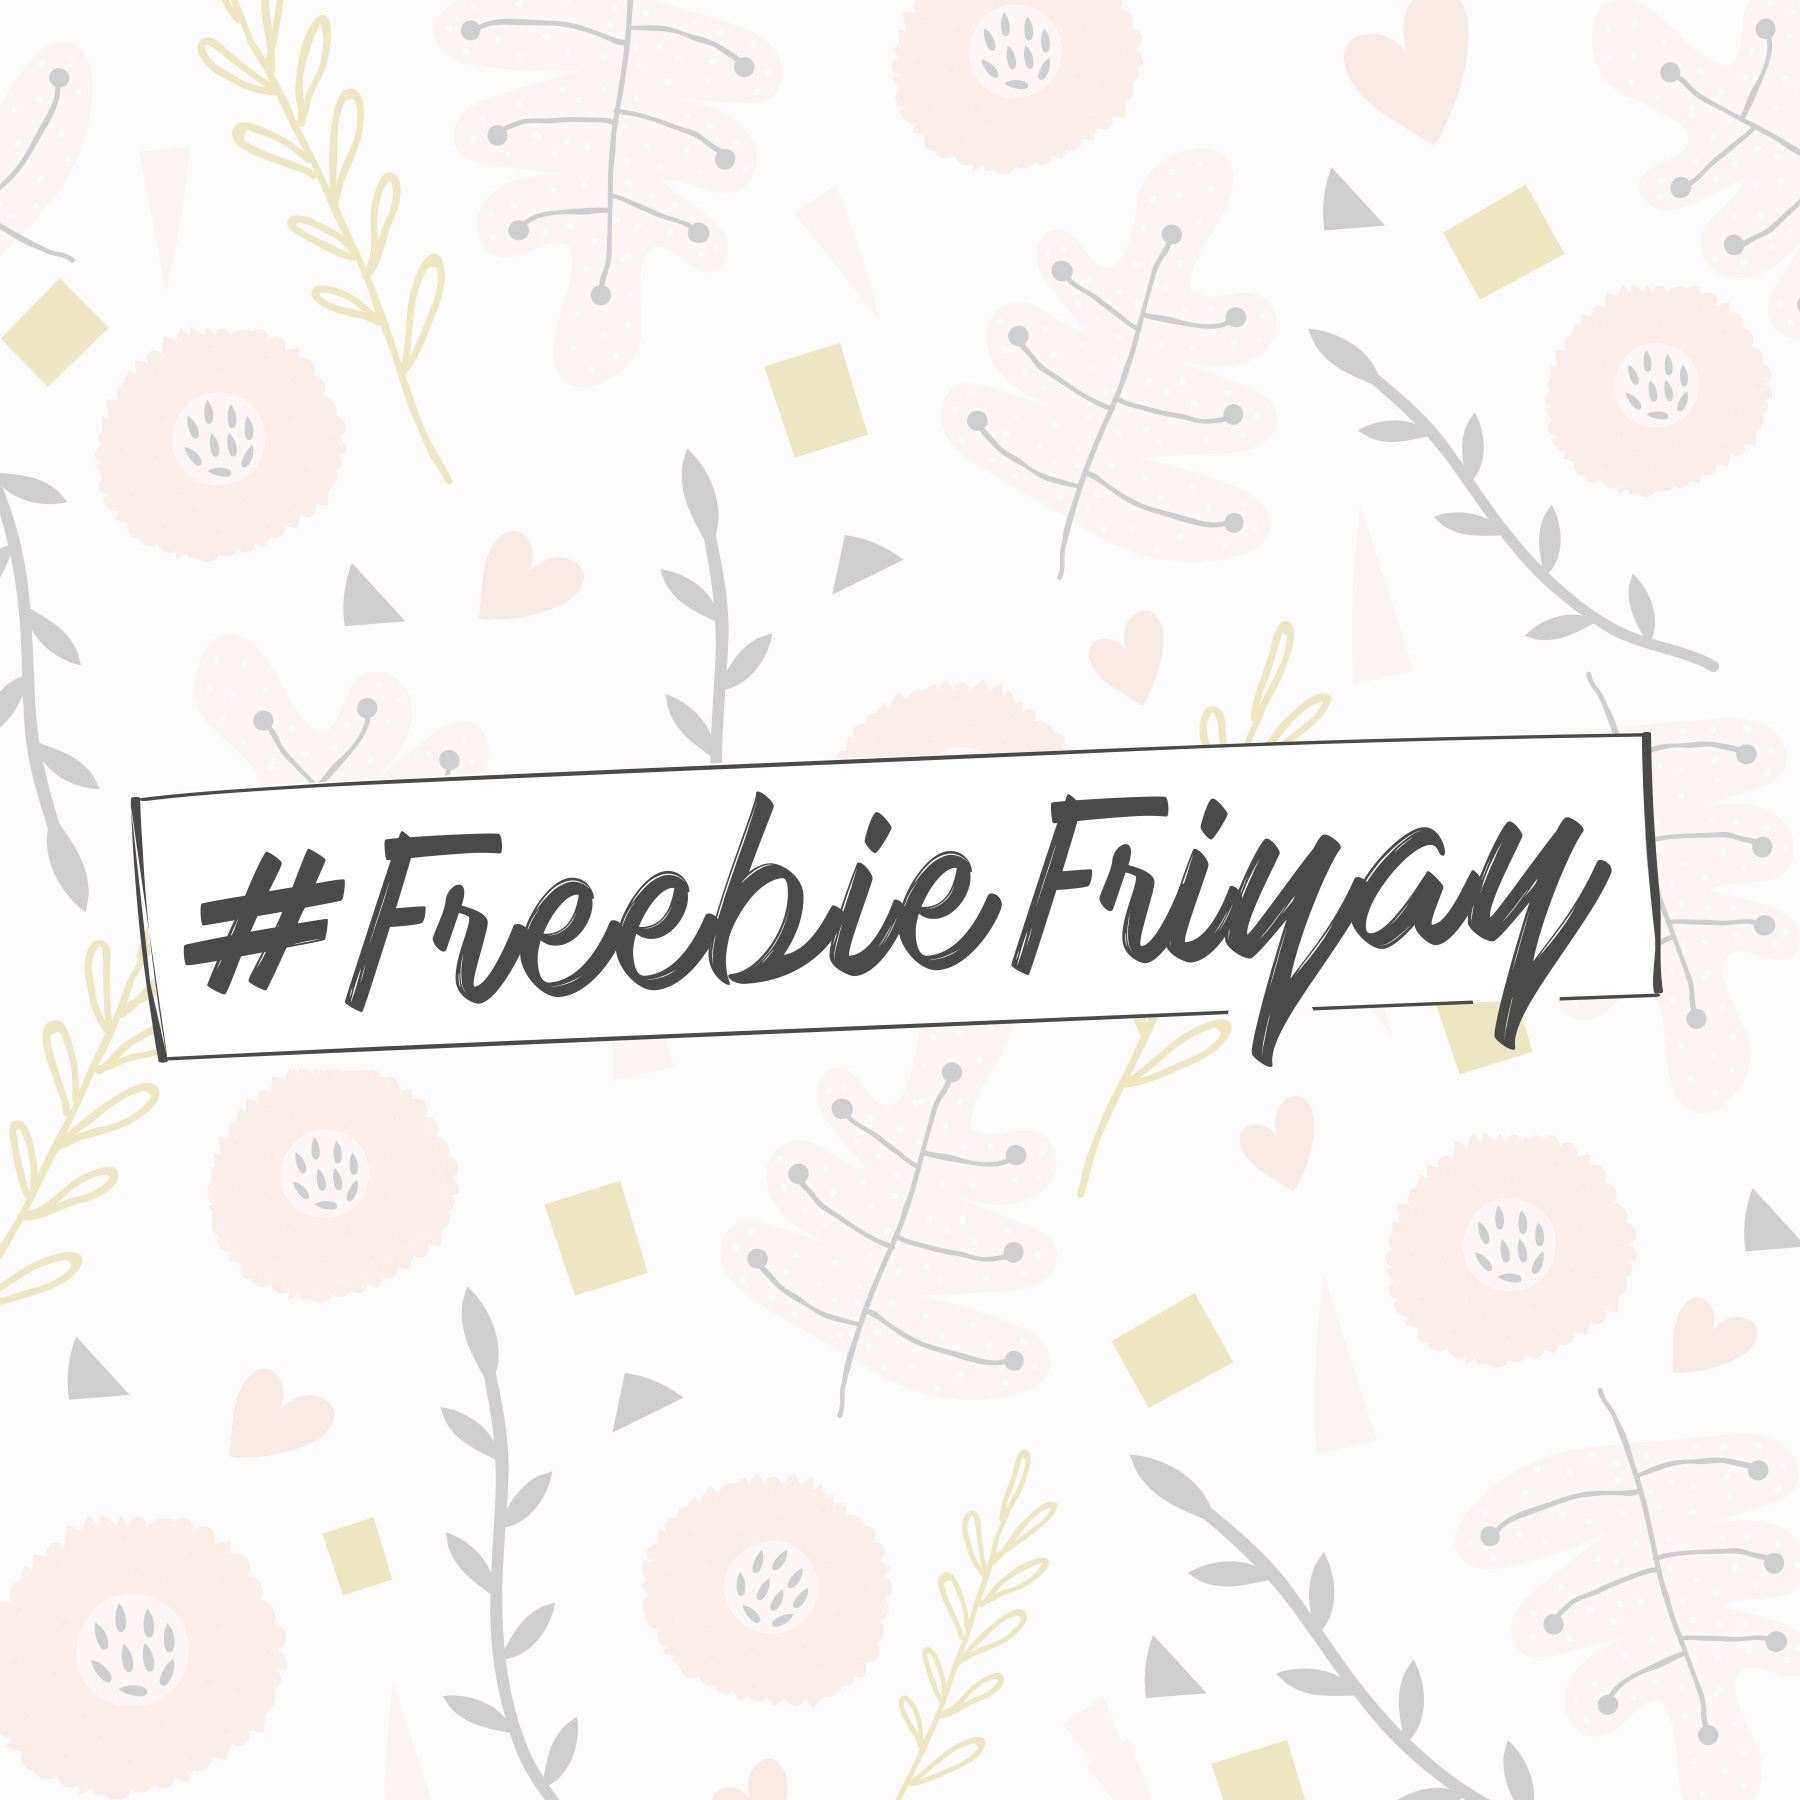 Gratis tools - FreebieFriyay